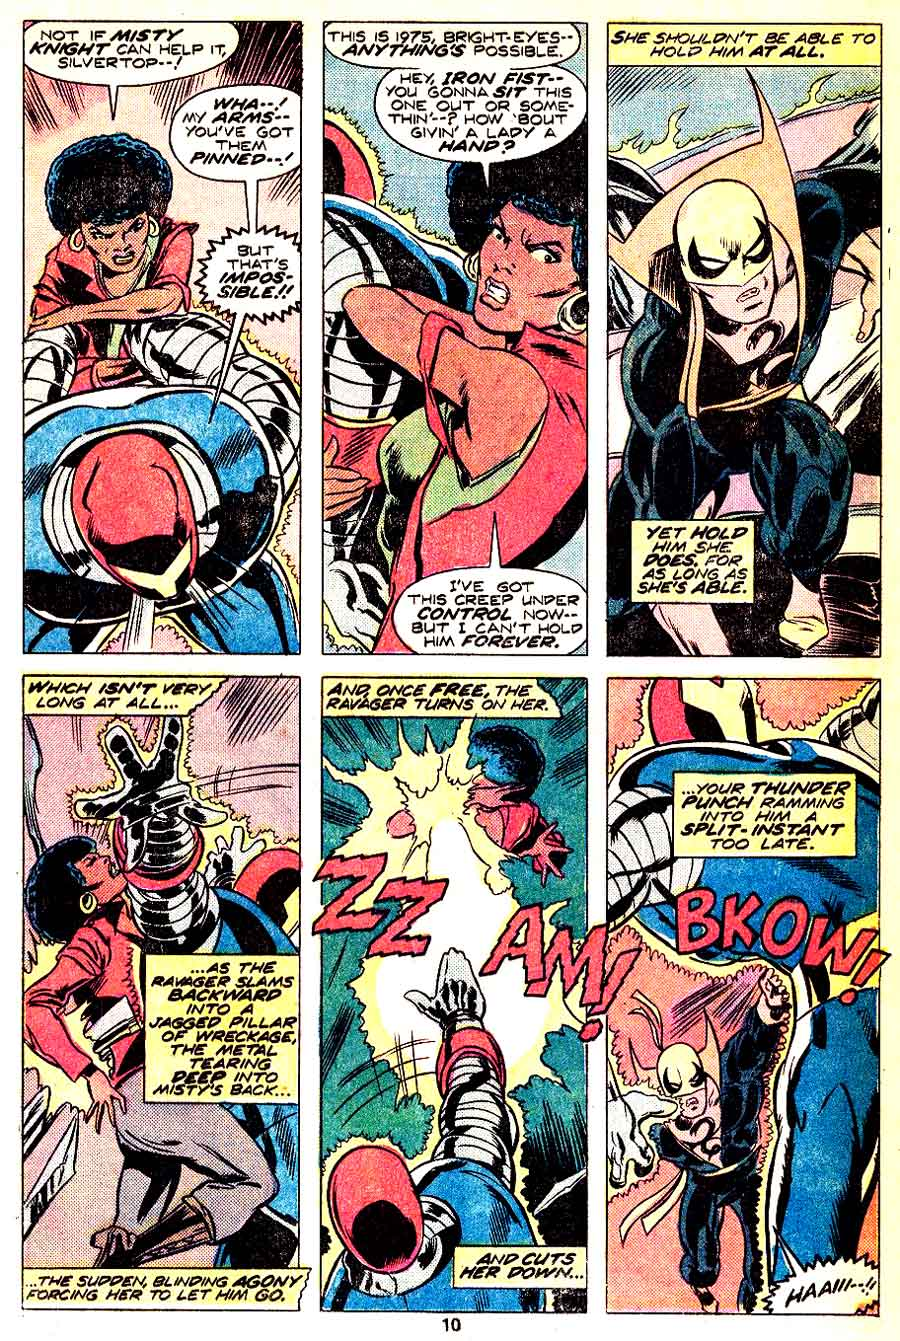 Iron Fist v1 #3 marvel bronze age comic book page art by John Byrne